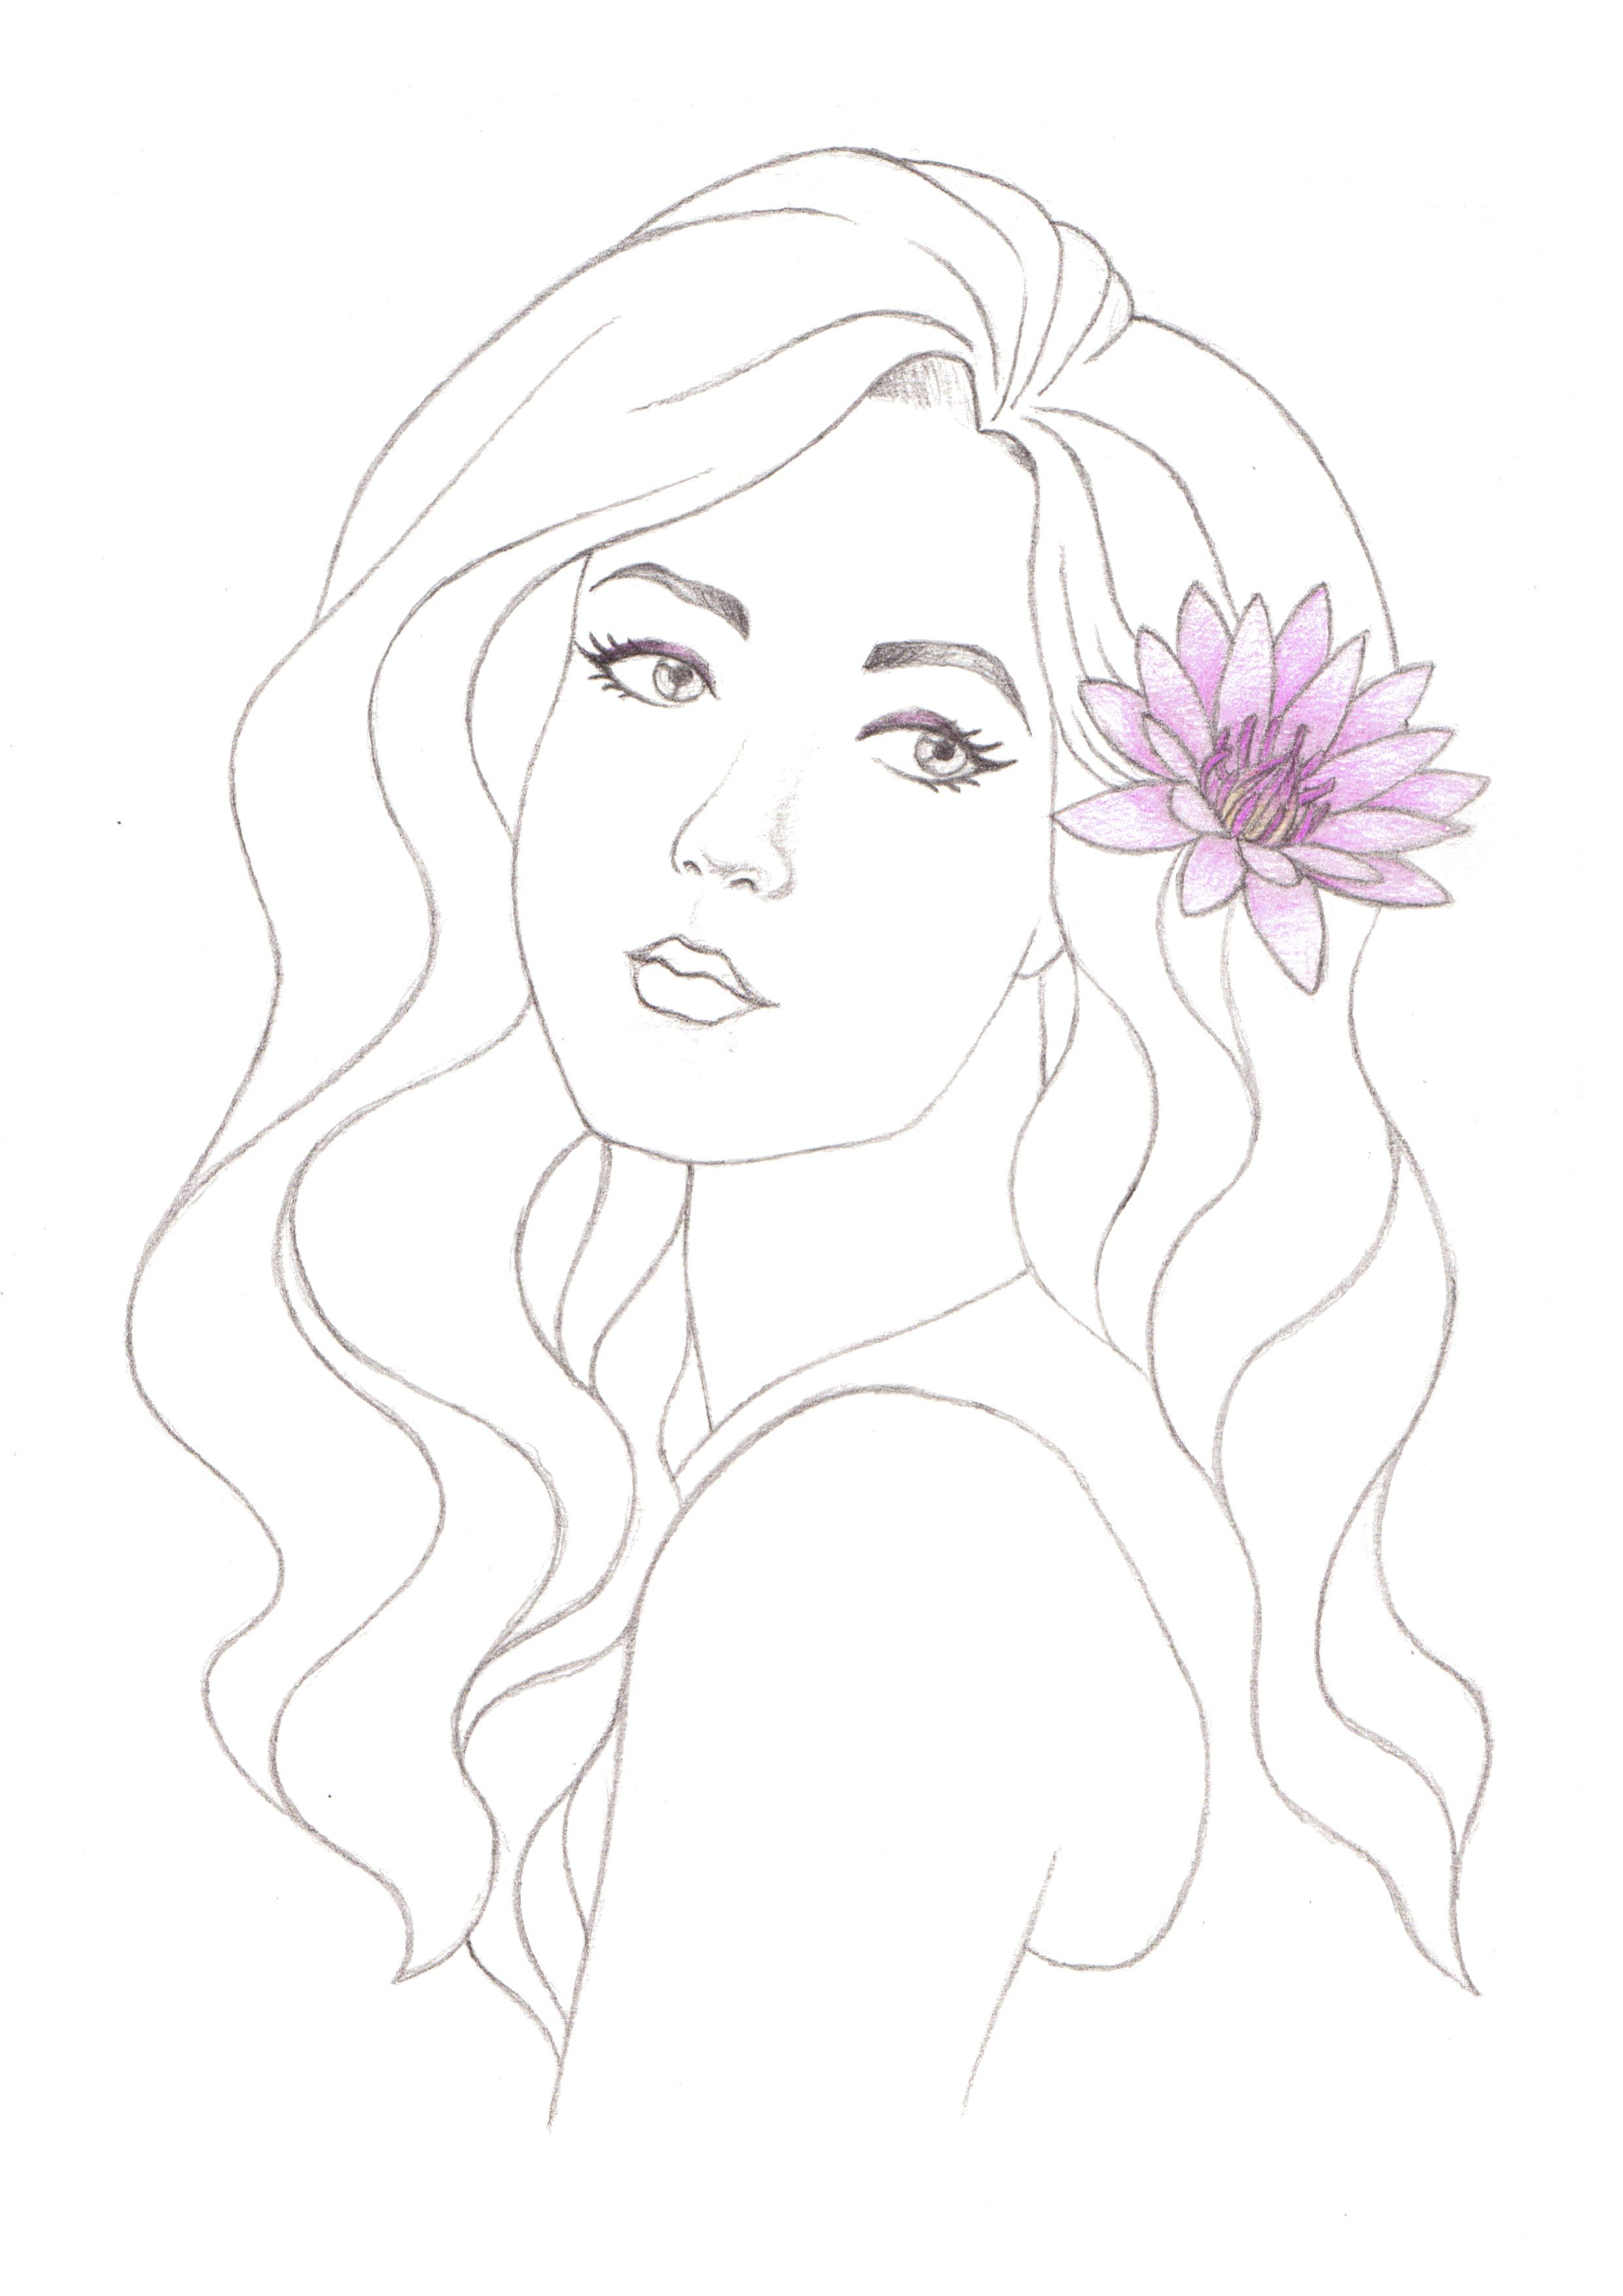 Water Lily Drawing Girl Women Traditional Art Beautiful Pretty Curly Hair Line Art